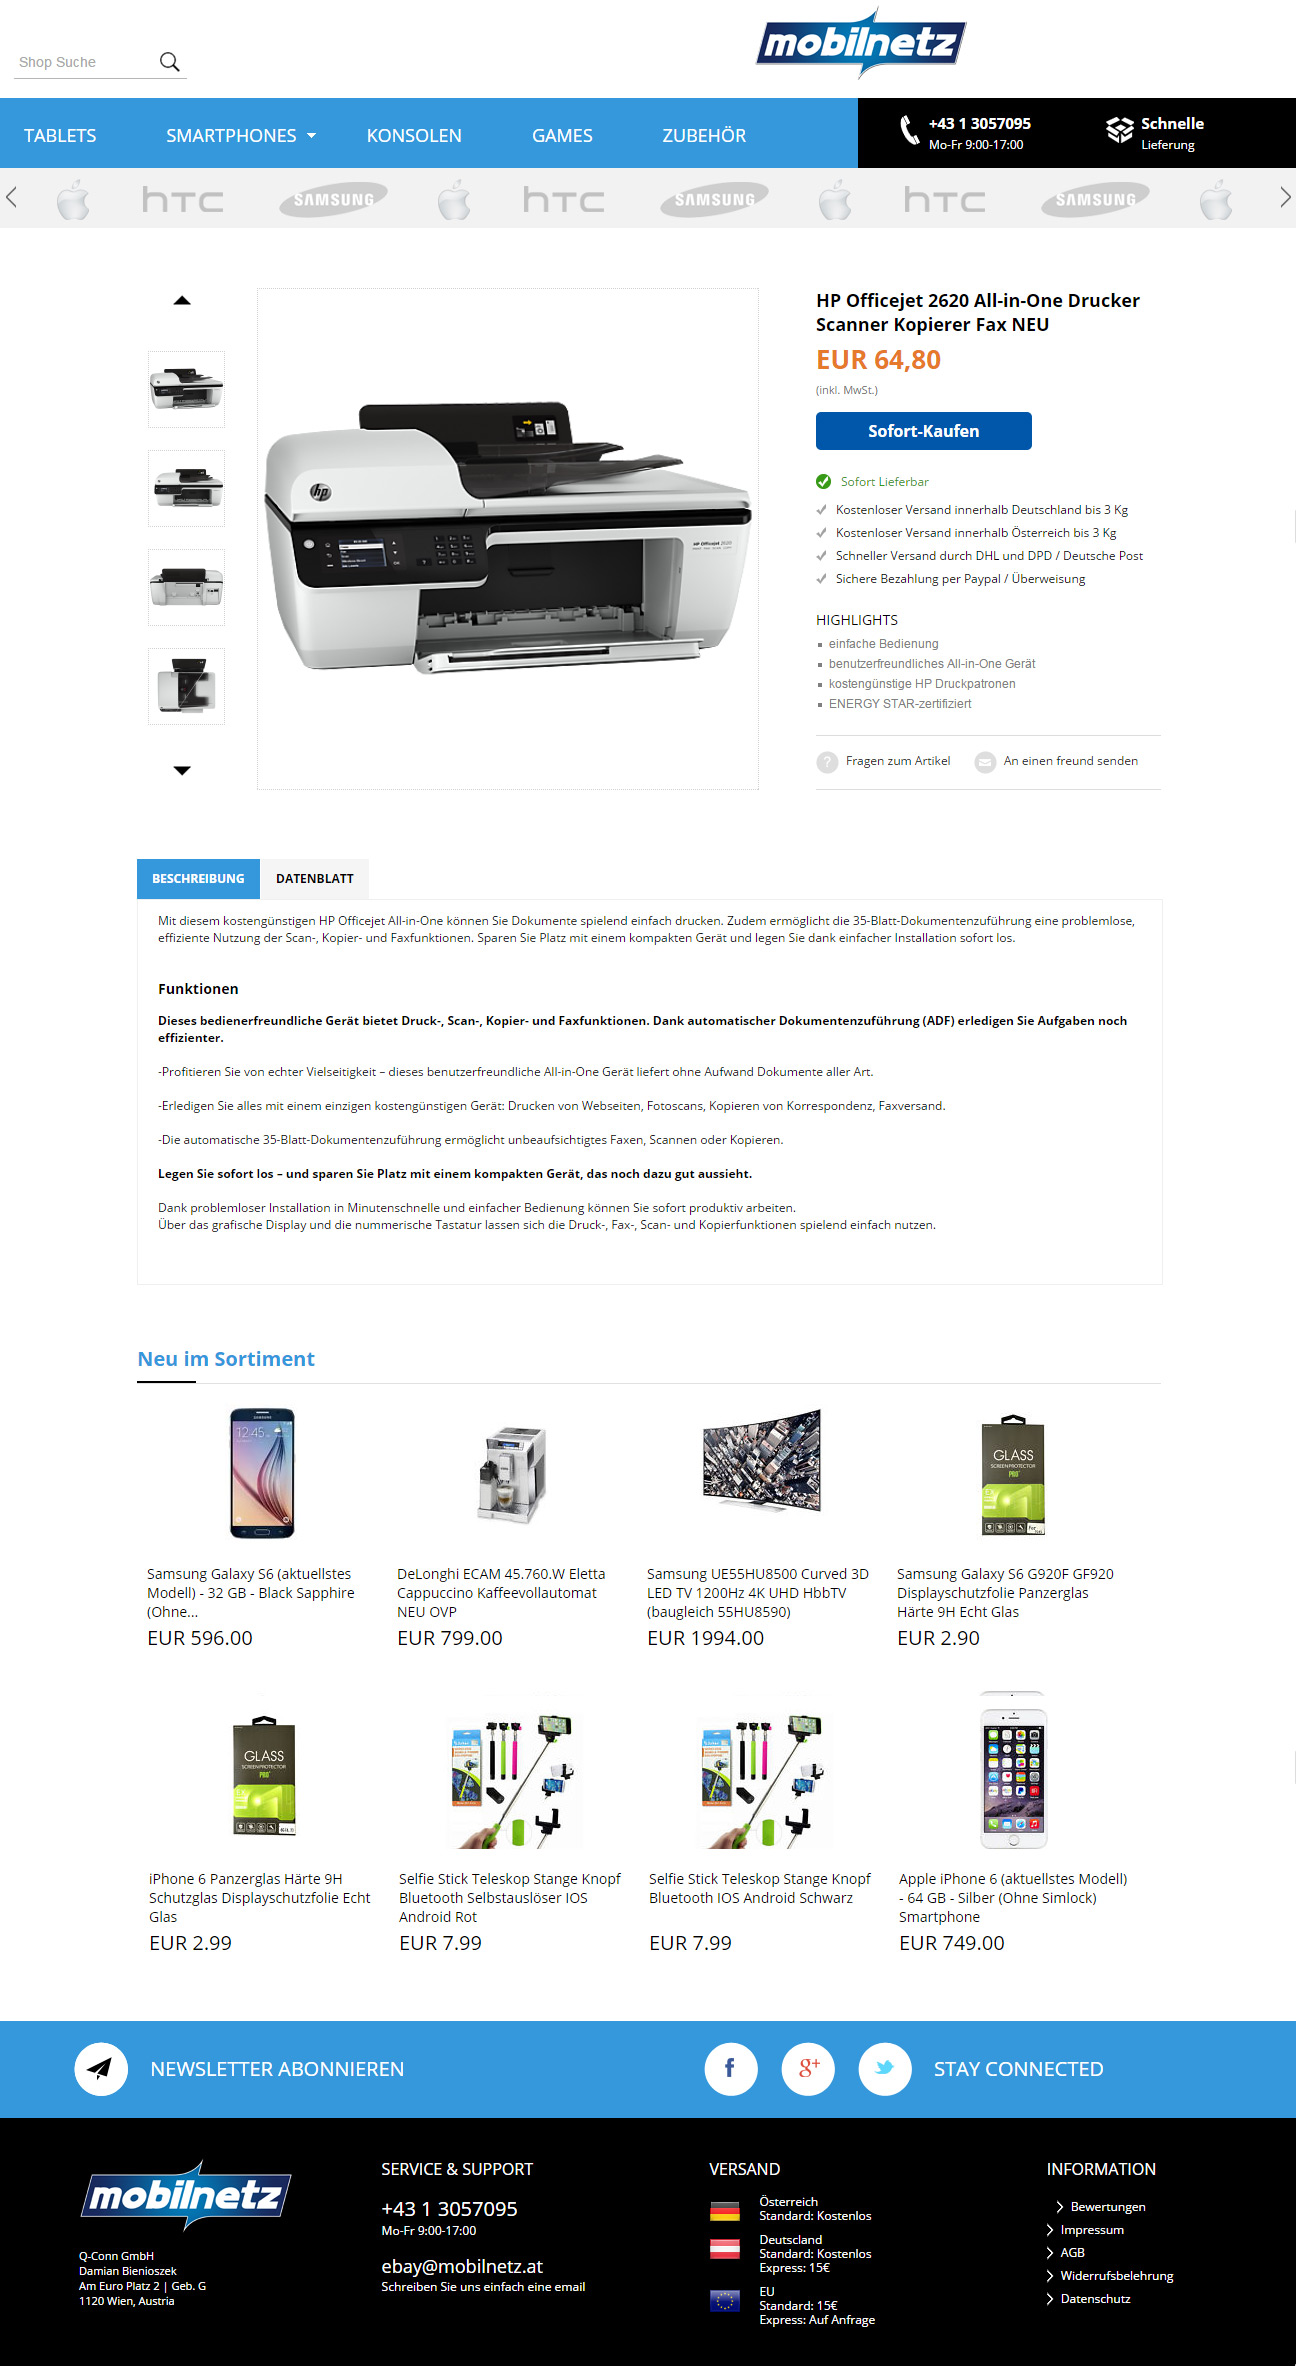 mobilnetz-ebay-shop-design